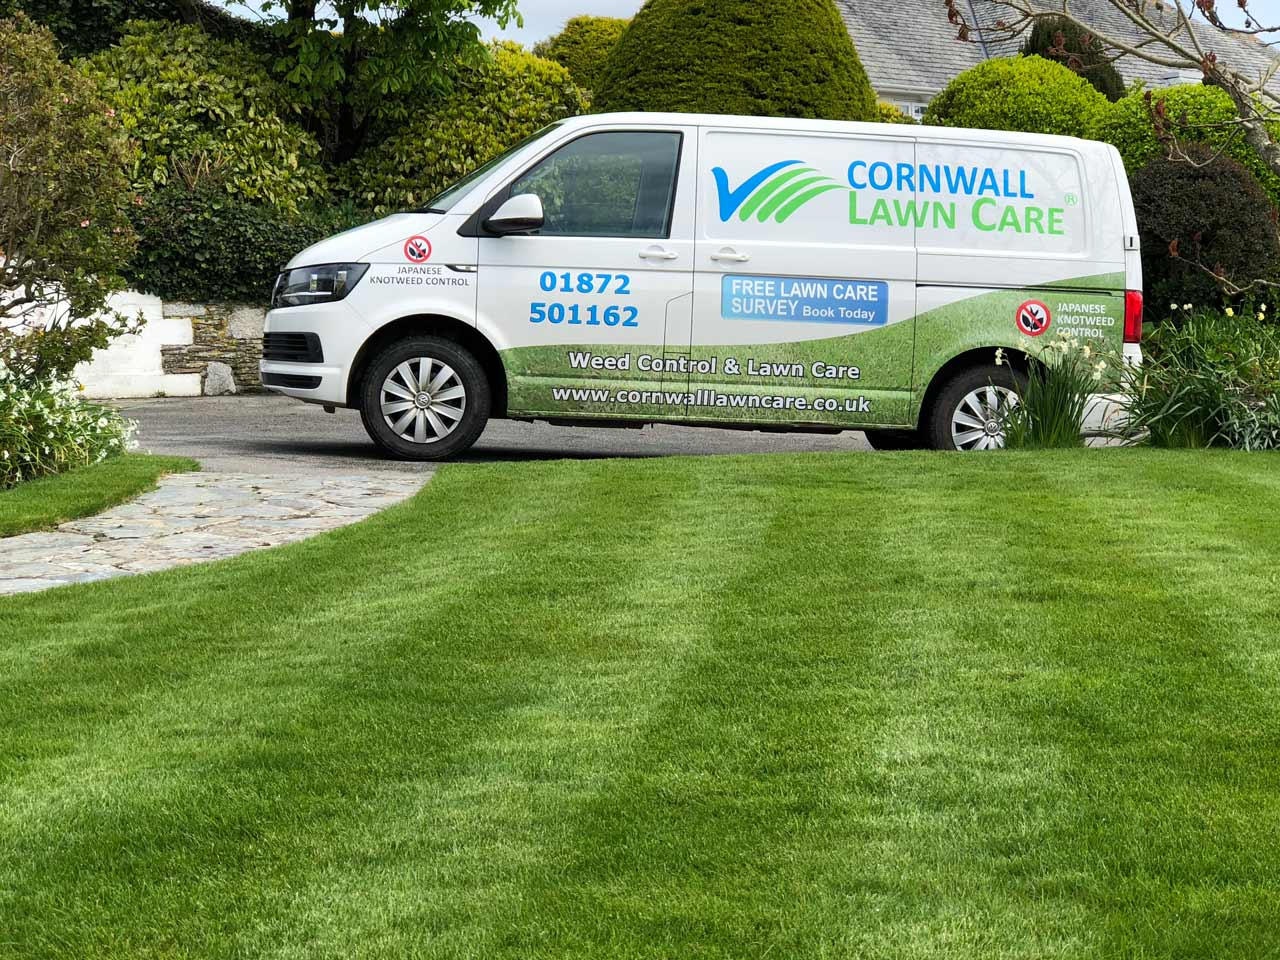 Cornwall Lawn Care van park at client's property next to perfect weed free grass